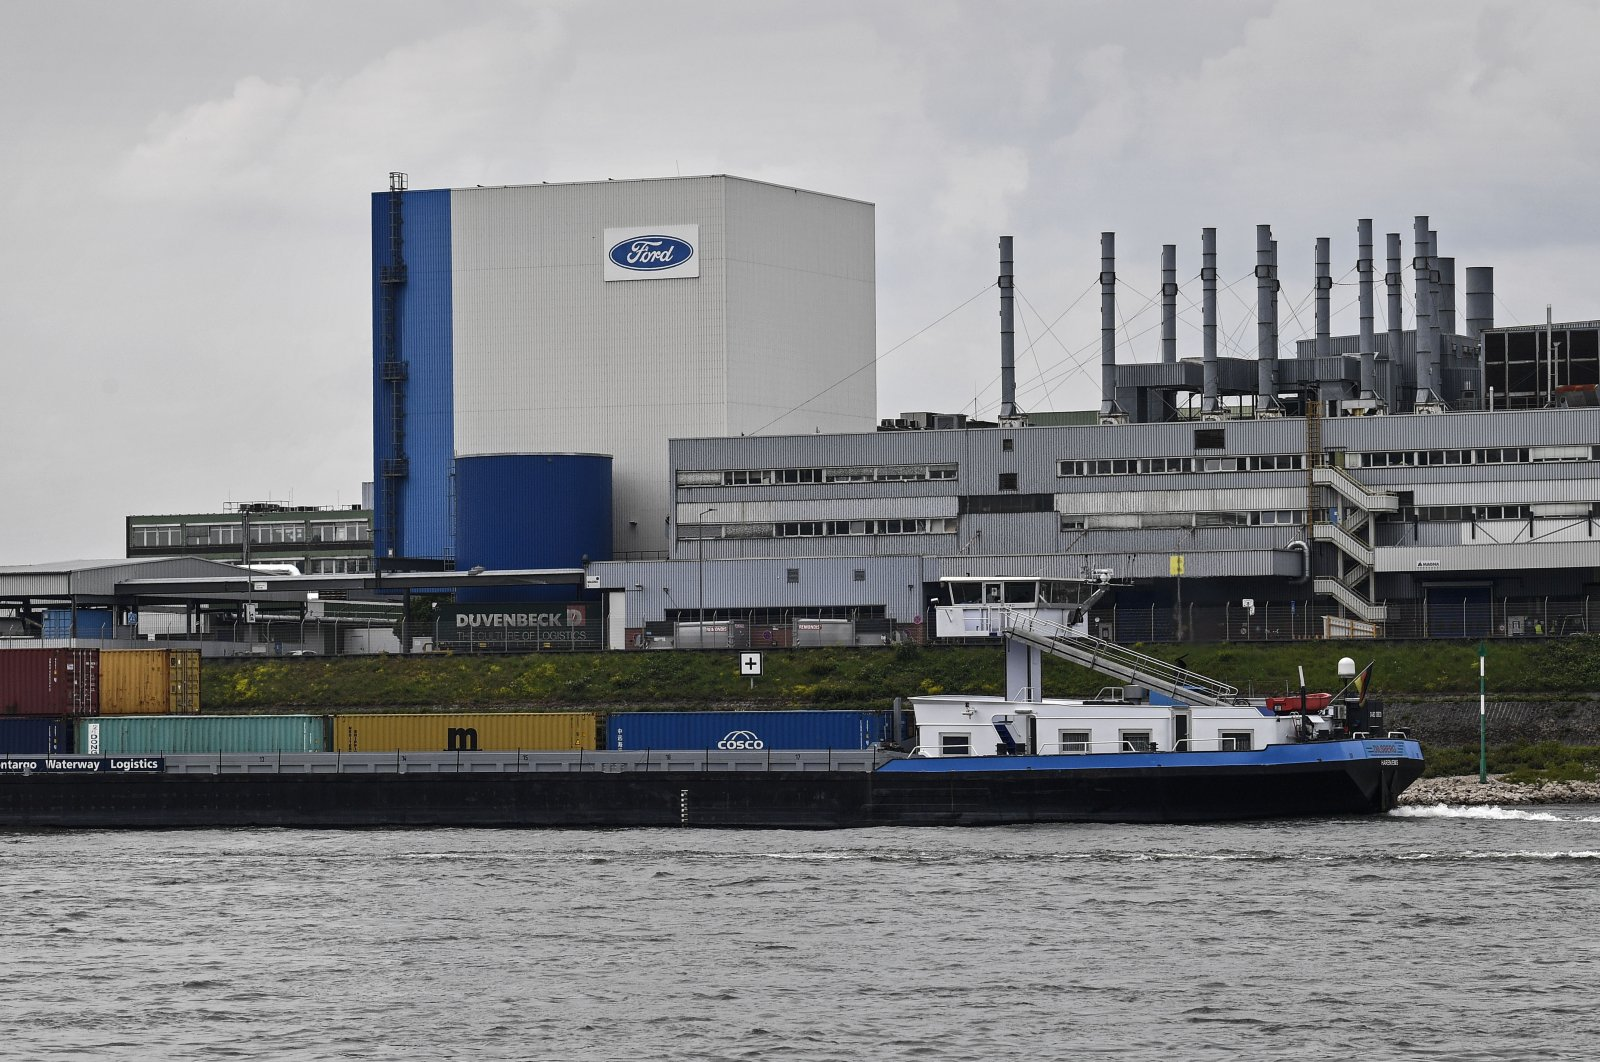 A container ship passes the Ford car plant in Cologne, Germany, May 4, 2020. (AP Photo)